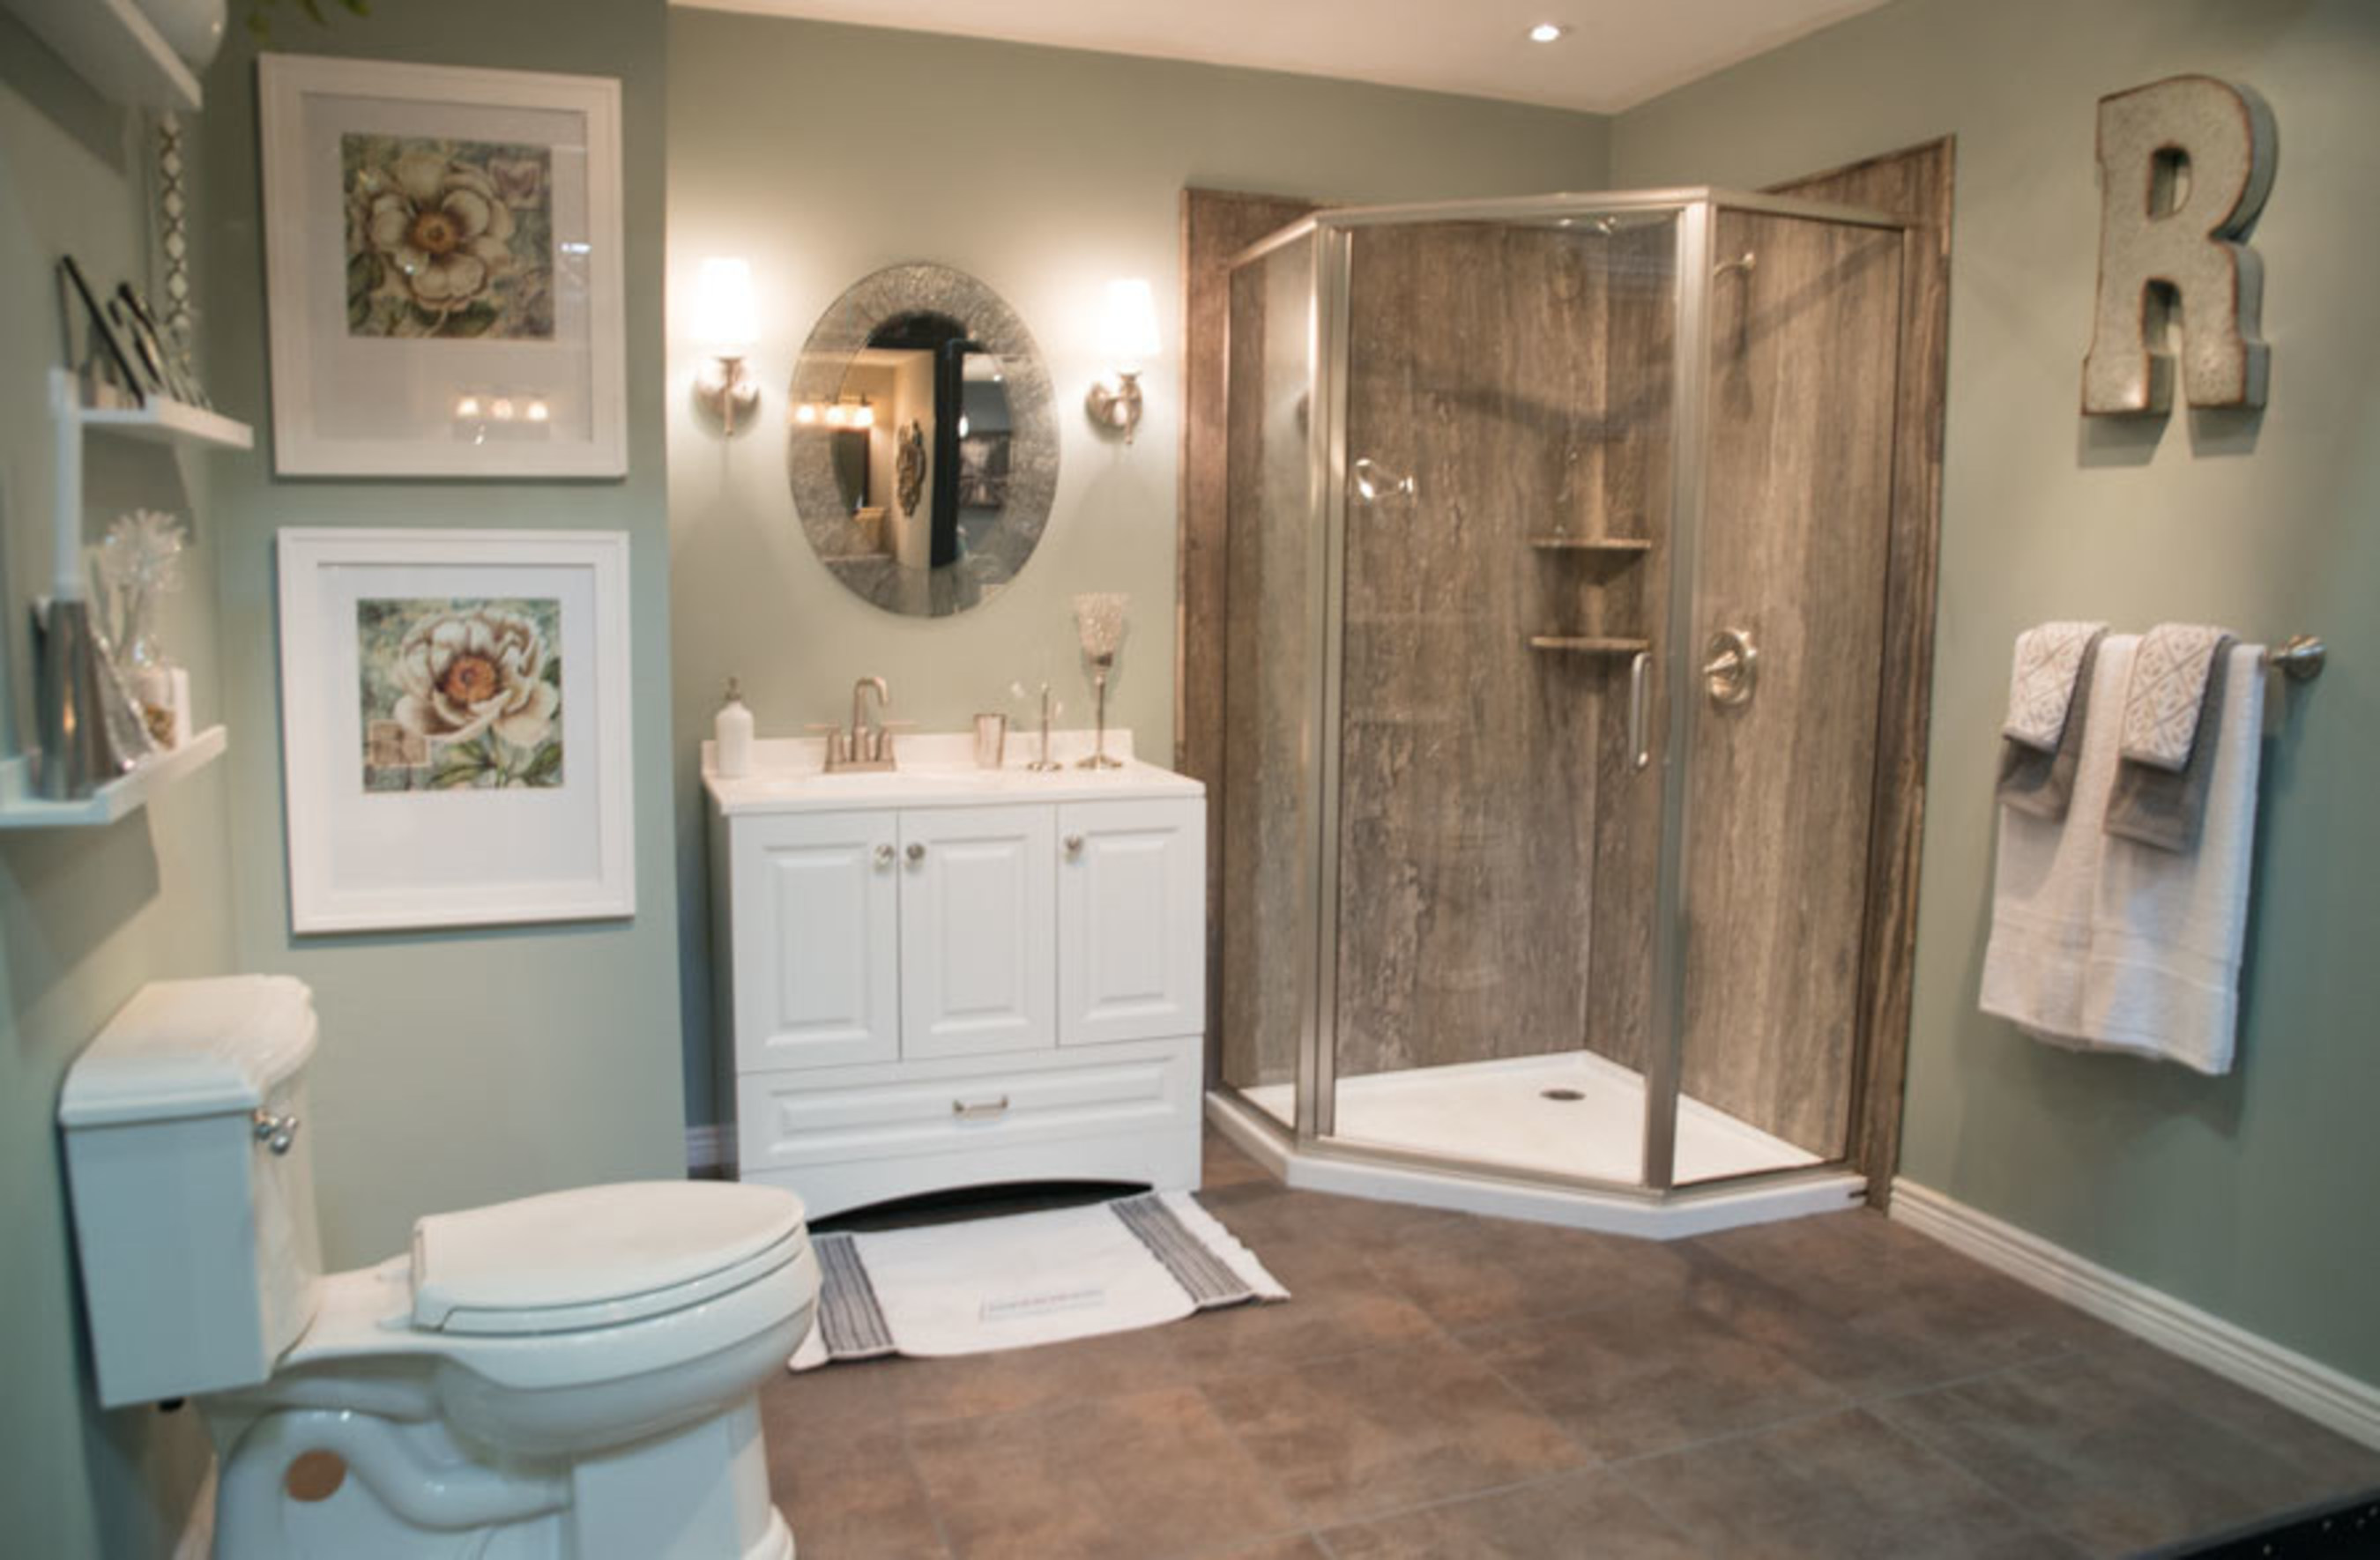 Re-Bath Bathroom Remodeling Franchise Plans Expansion into ... on Restroom Renovation  id=95375